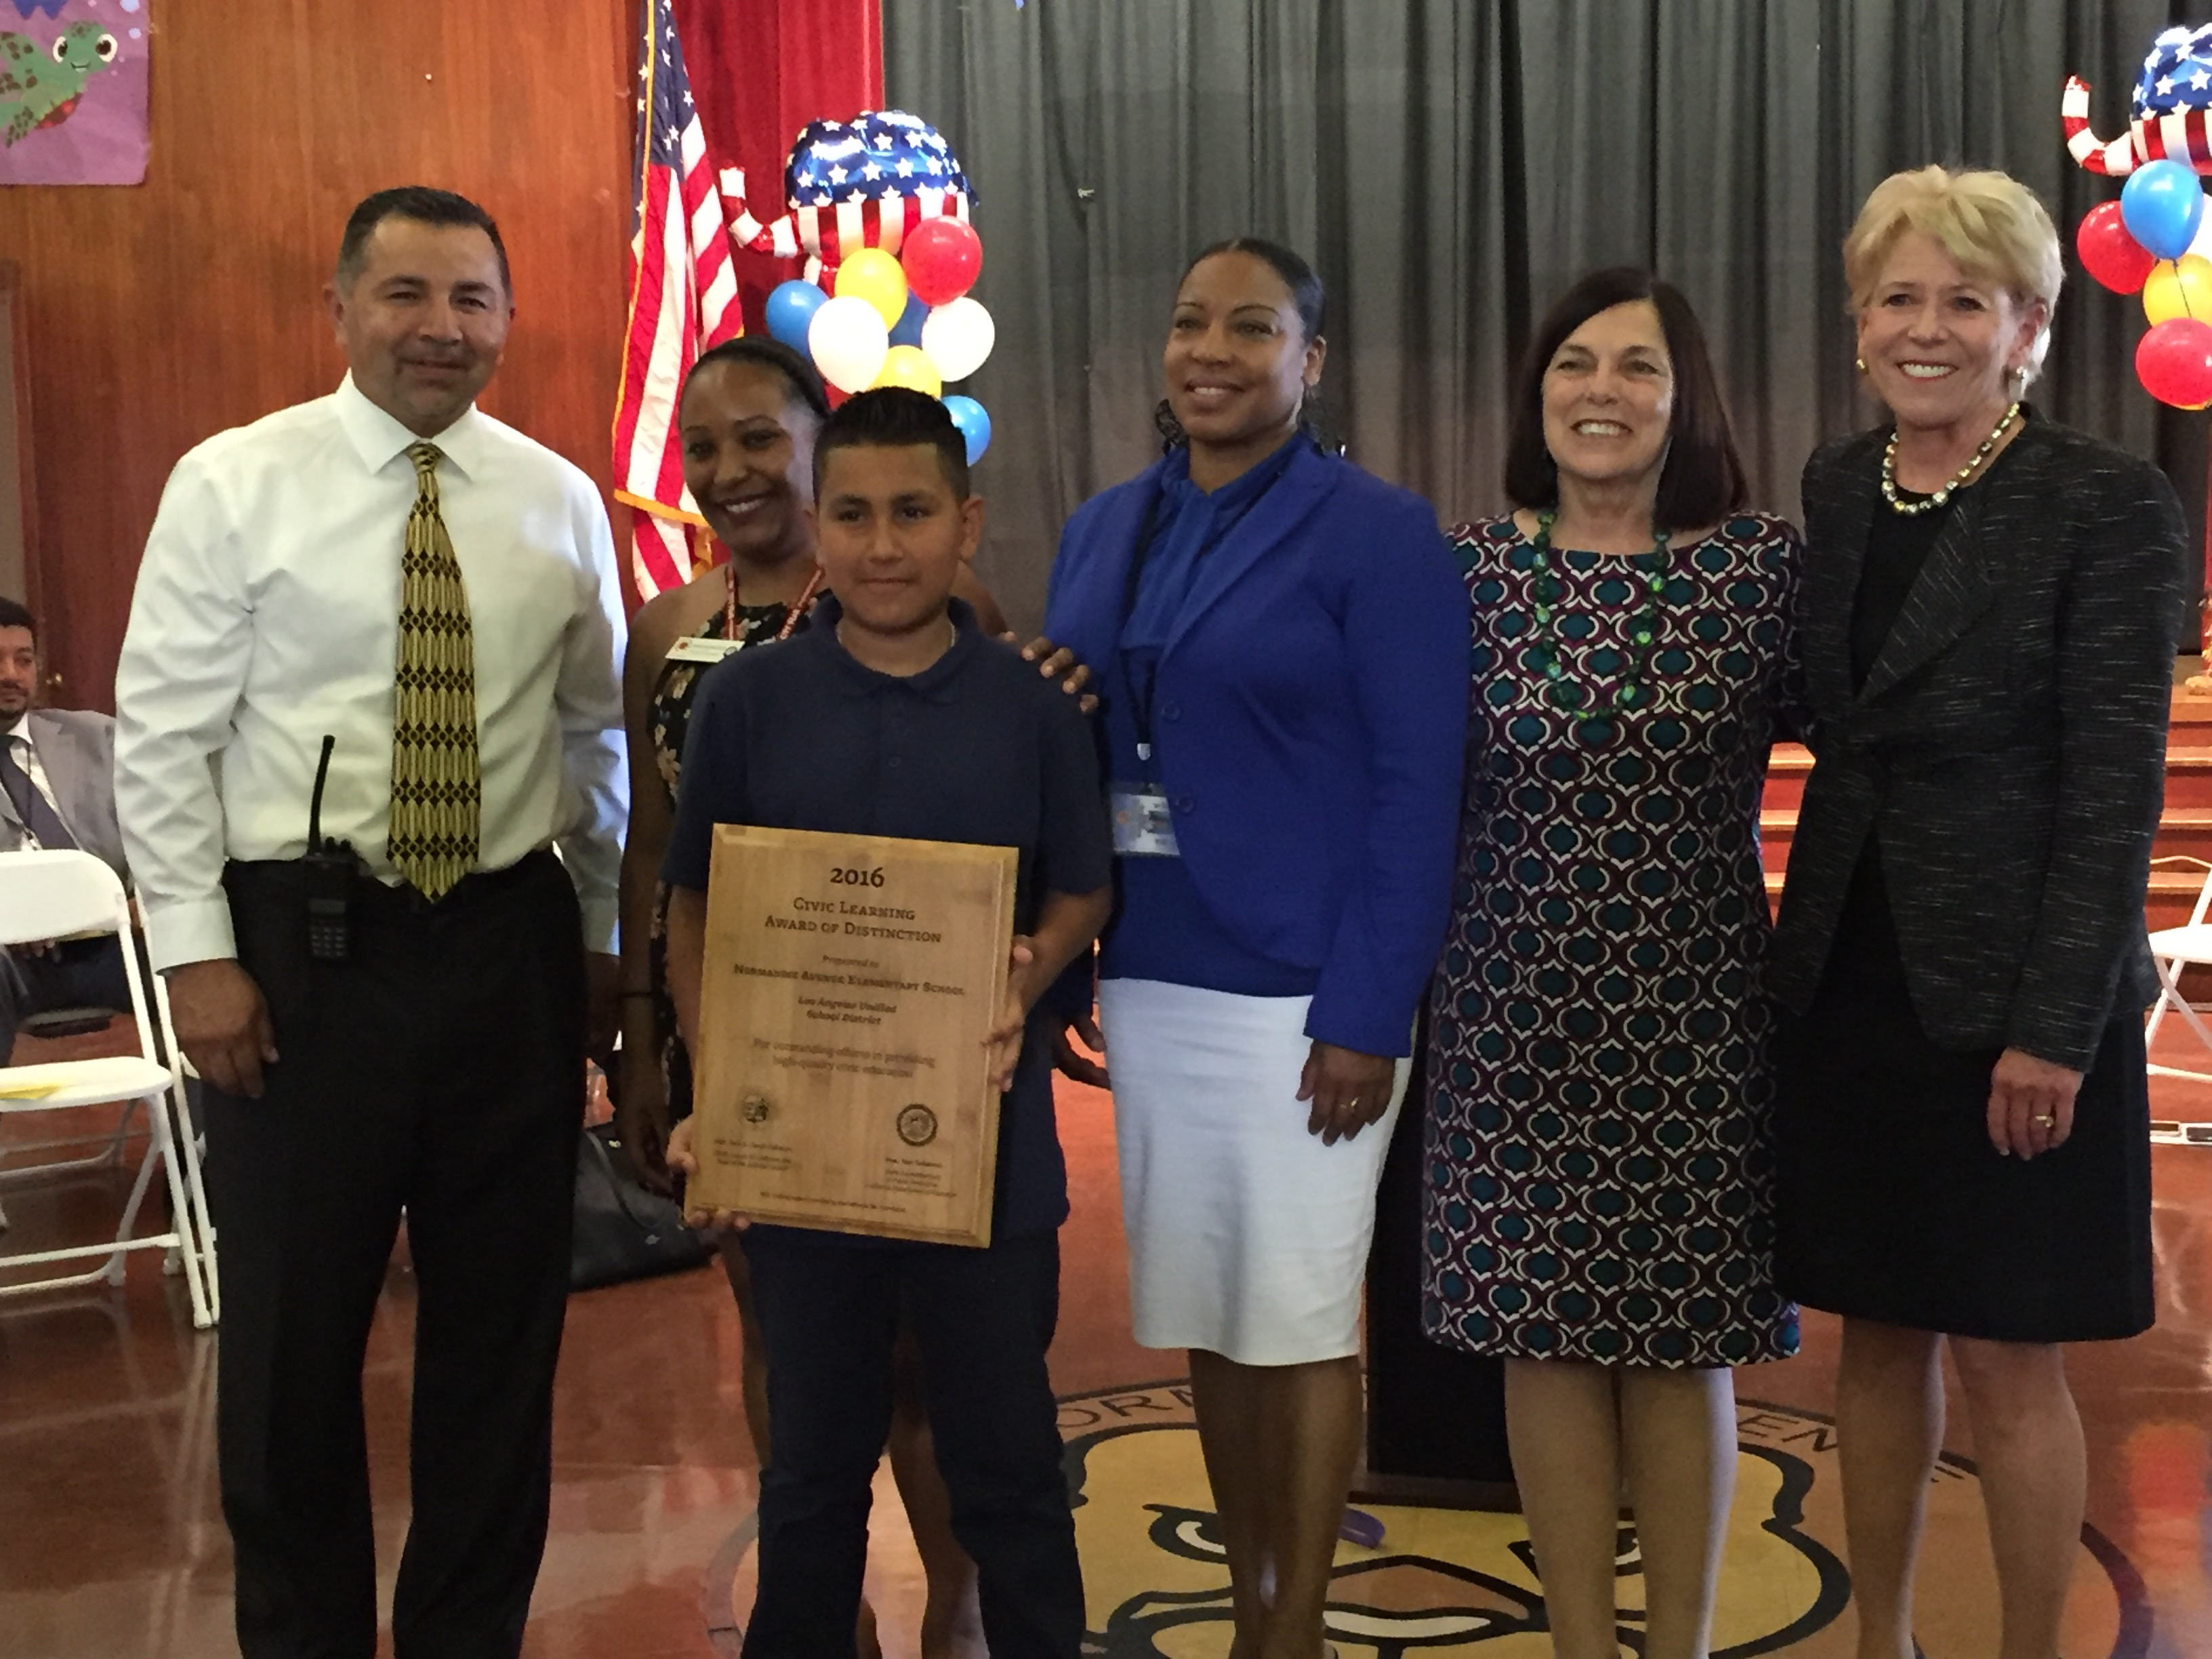 2016 Civic Learning Award of Distinction: Normandie Avenue Elementary School